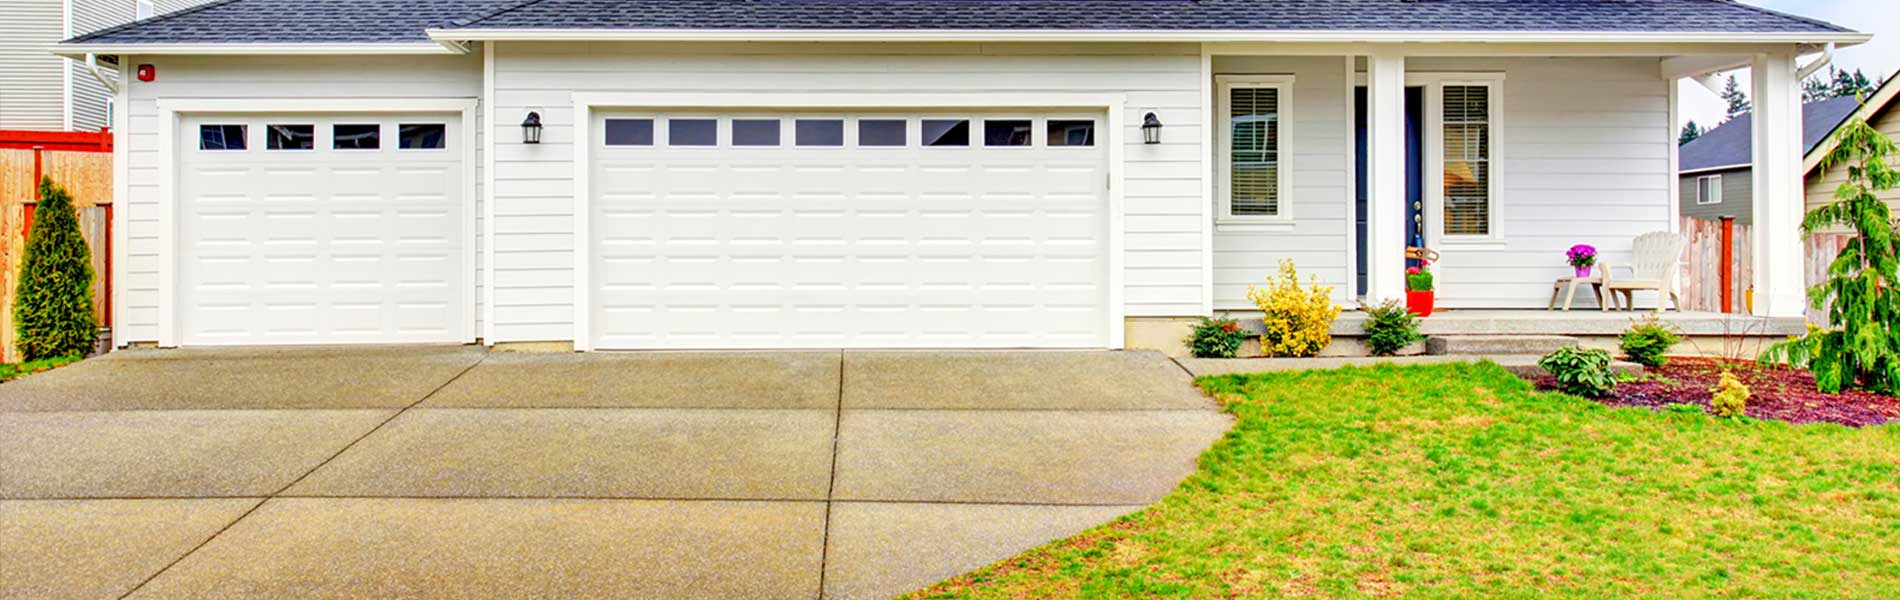 Garage Door 24 Hours Repair, Louisville, KY 502-496-0228